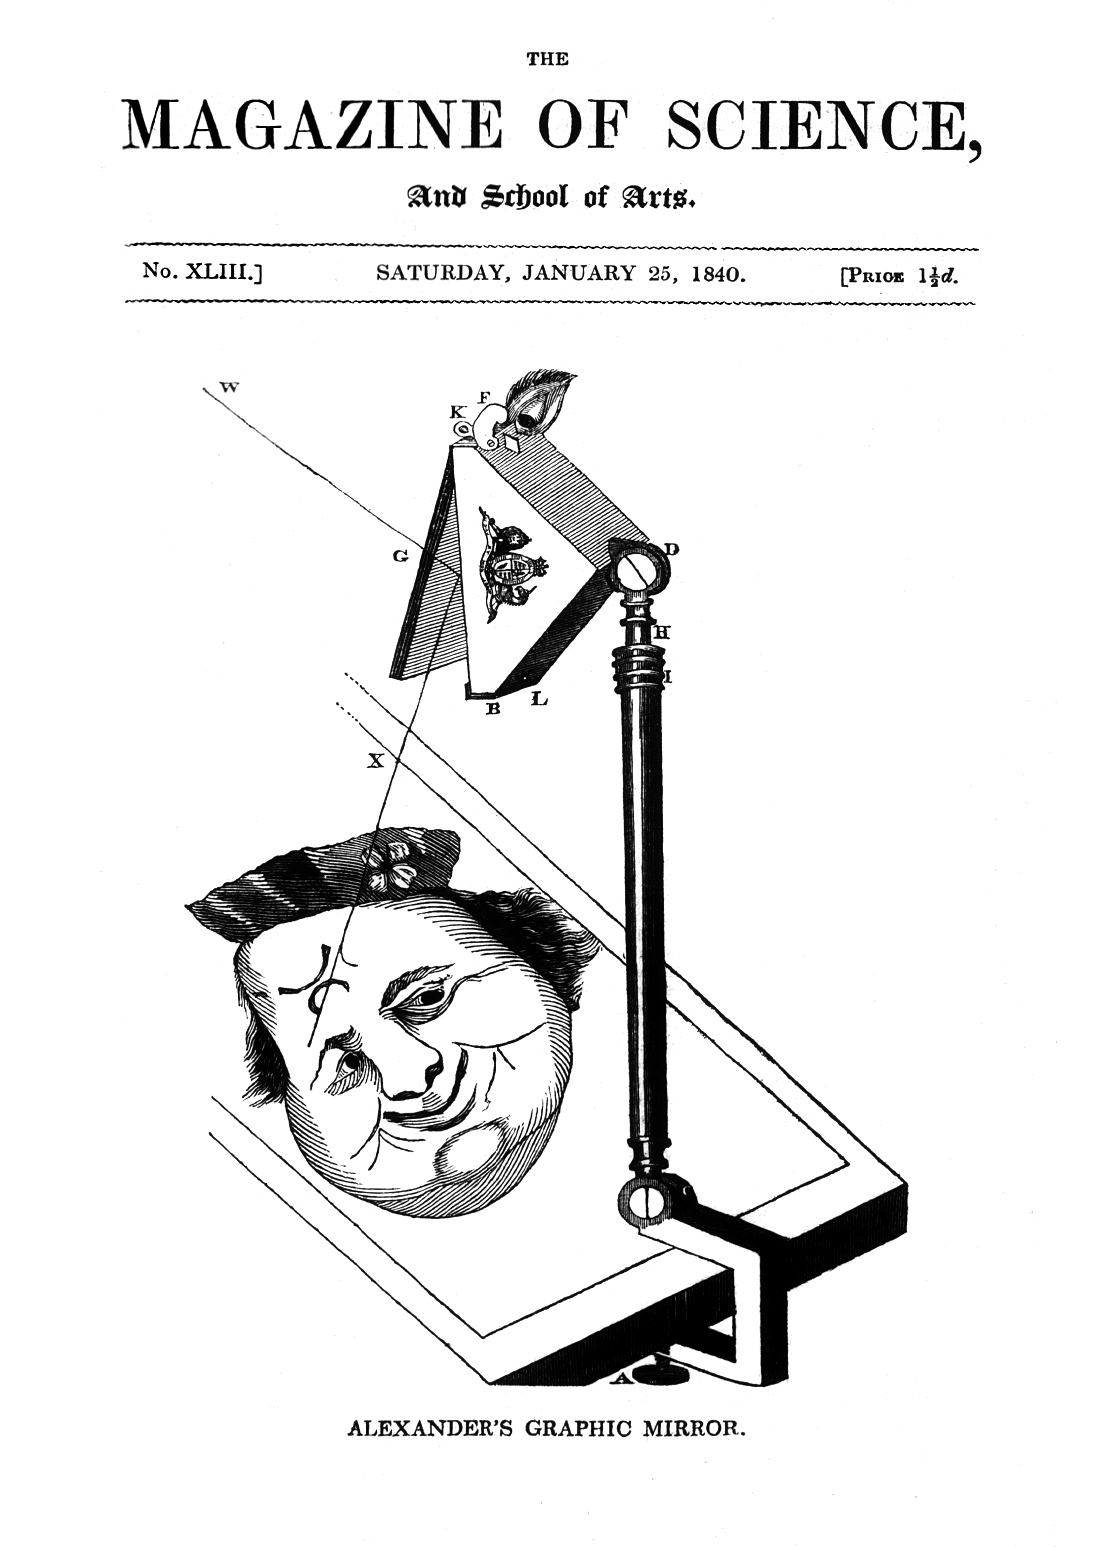 Alexander's Graphic Mirror, The Magazine of Science, Jan. 25, 1840.